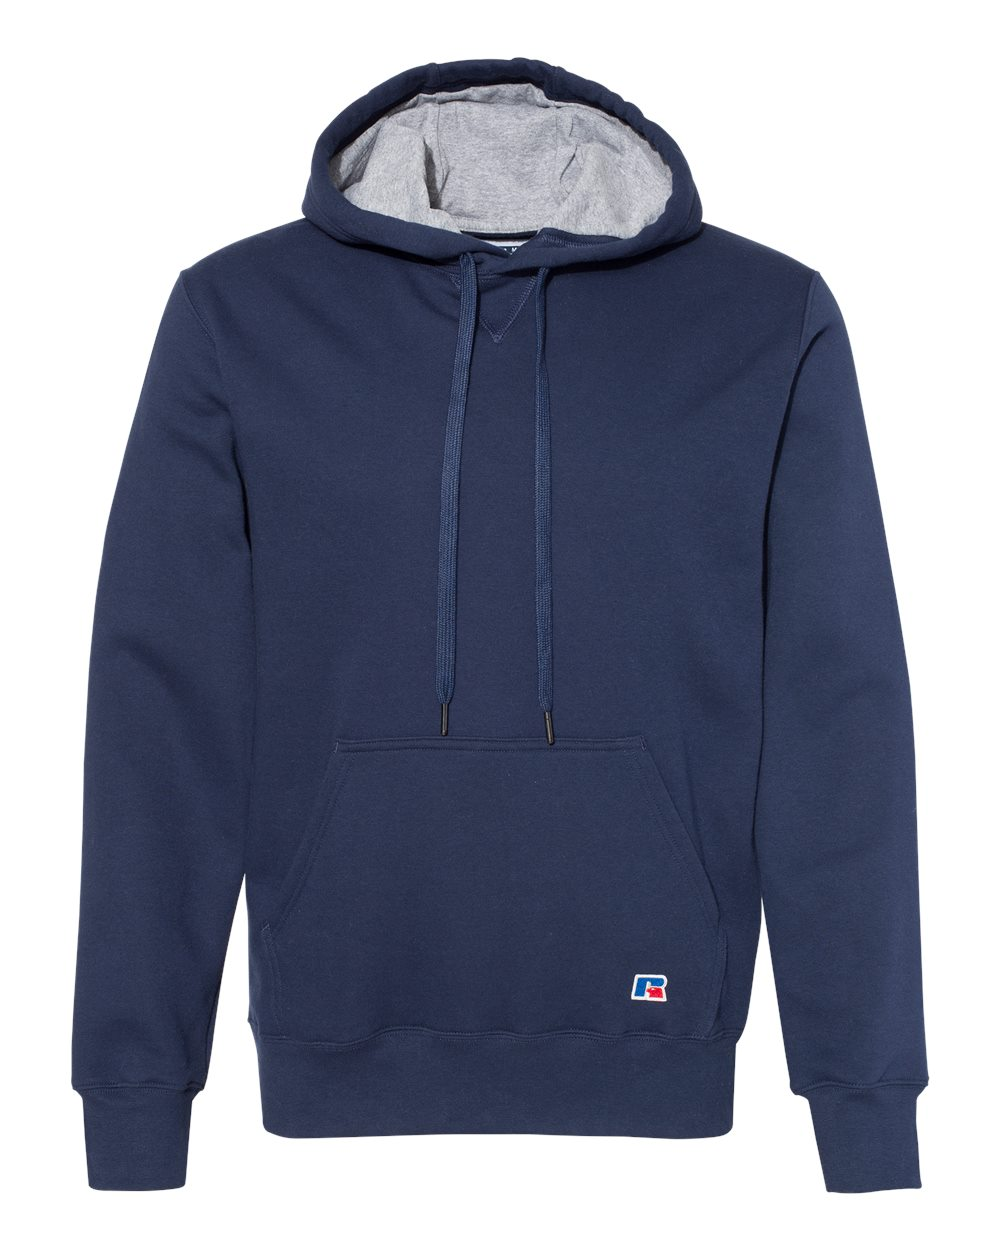 Russell-Athletic-Mens-Cotton-Rich-Fleece-Hooded-Sweatshirt-82ONSM-up-to-3XL miniature 18